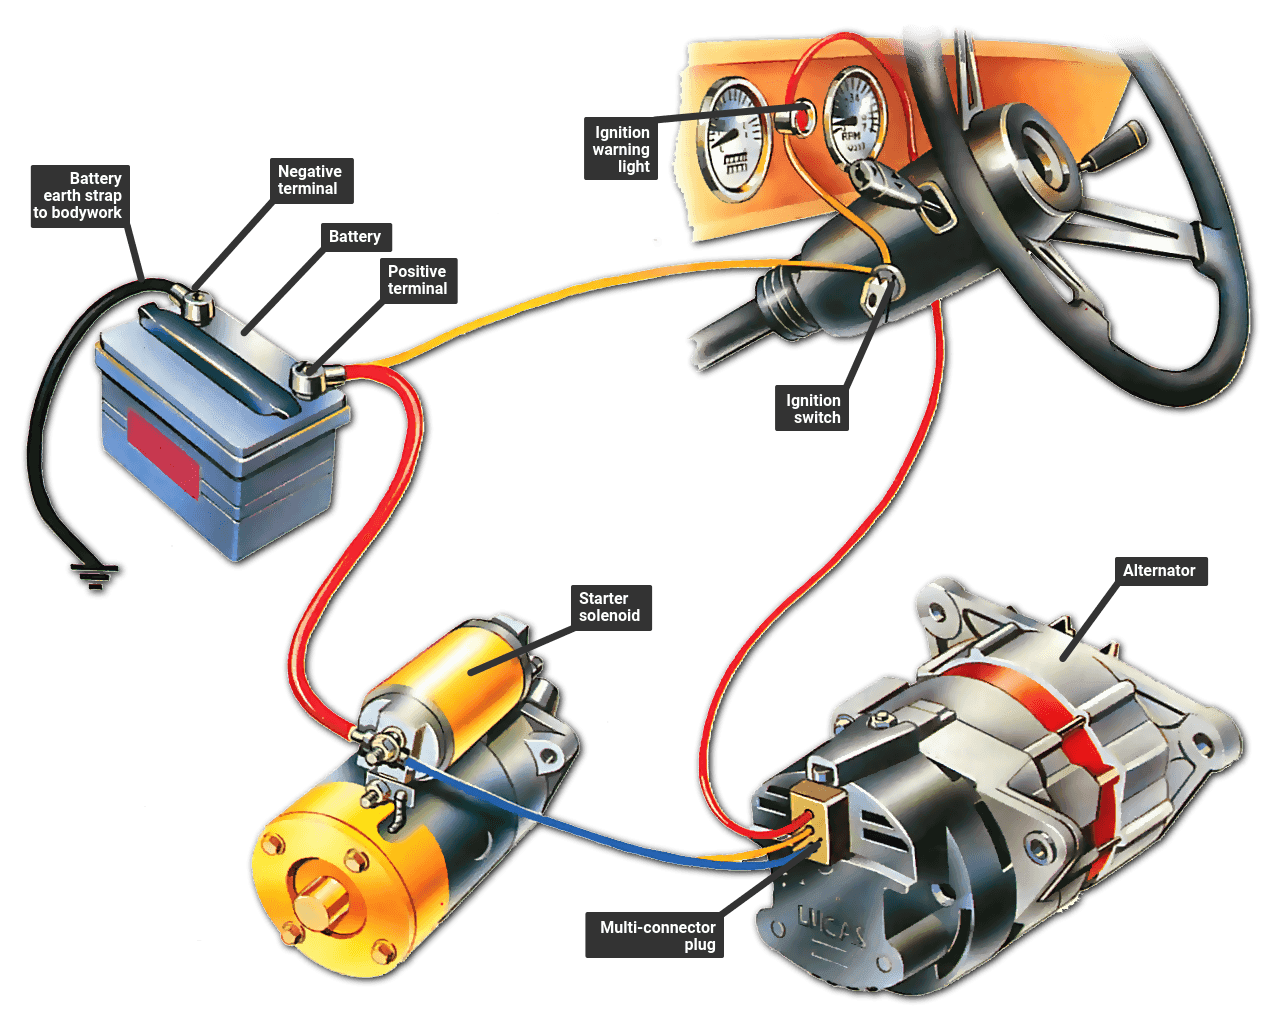 hight resolution of ignition switchcar wiring diagram my wiring diagram car ignition wiring diagram wiring diagram show ignition switchcar